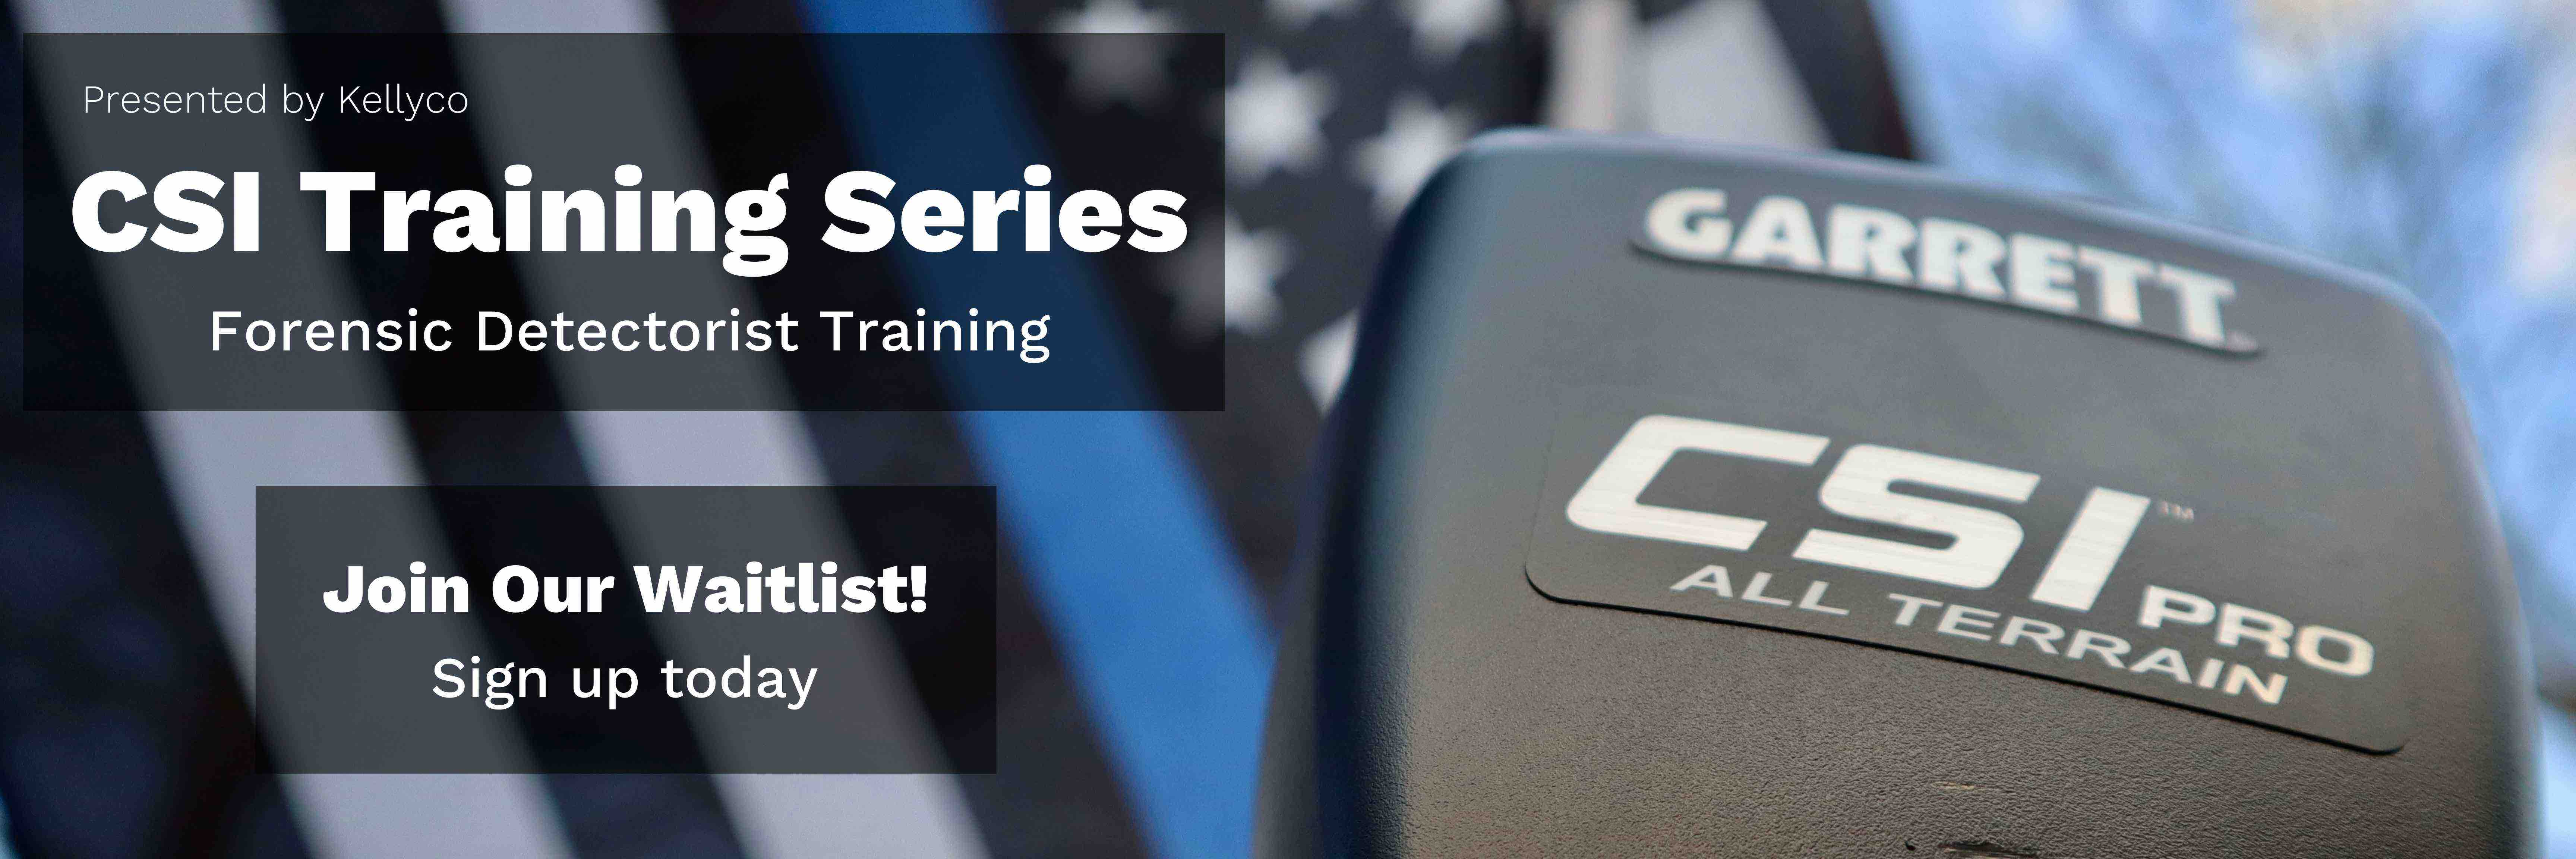 CSI Training Series at Kellyco - Sign up Today